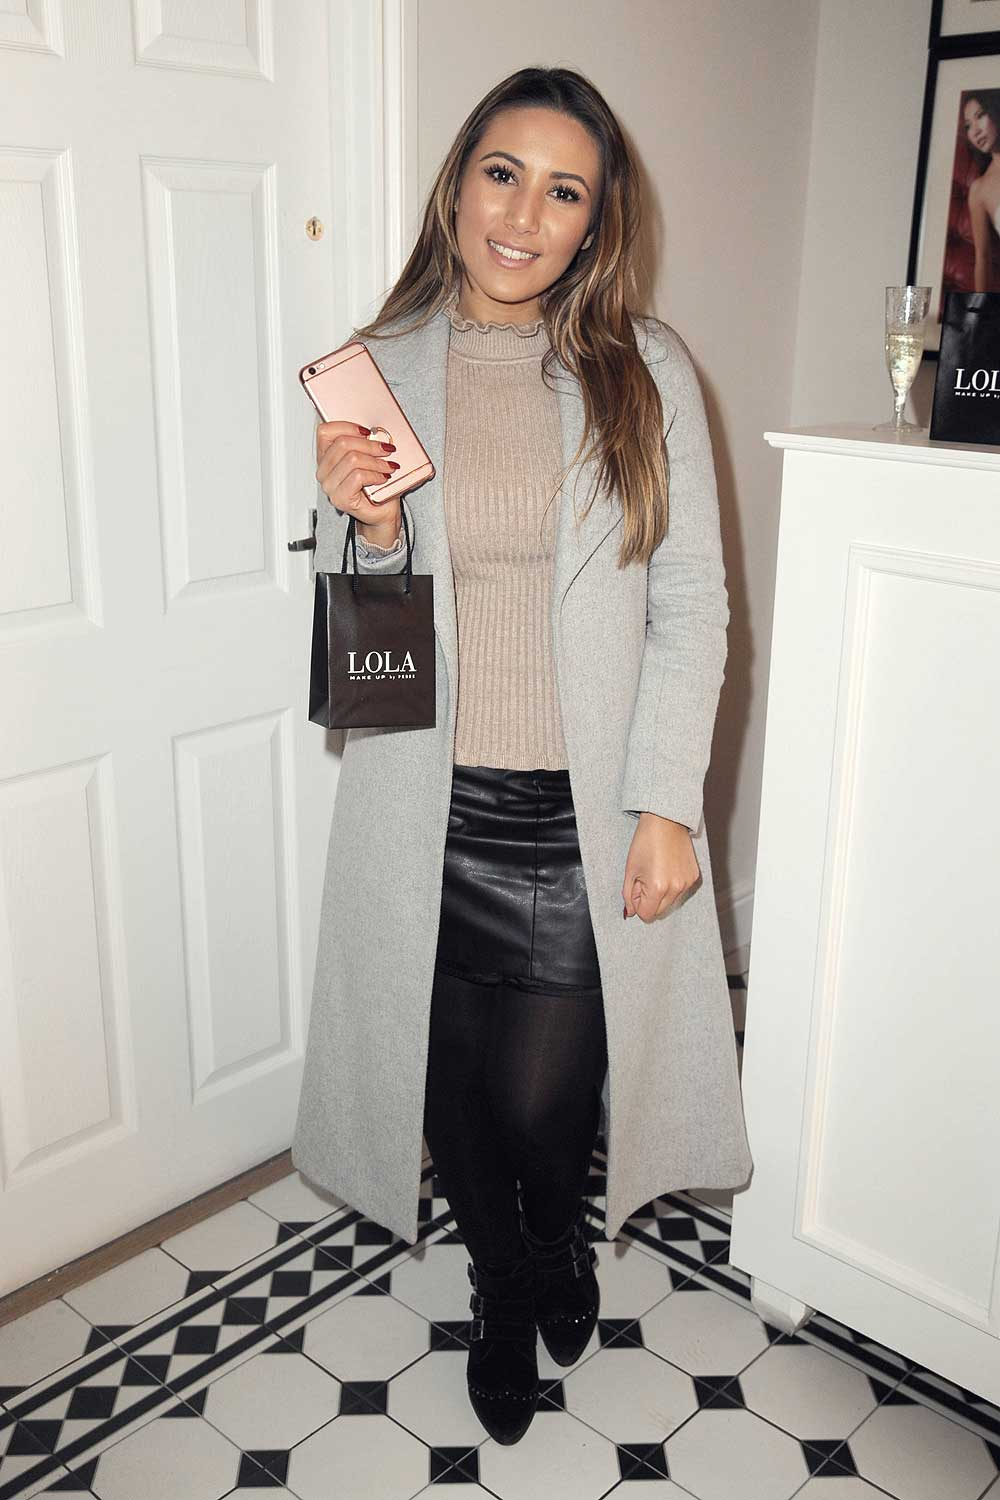 Mona Eyes attends Lola By Perse Boutique Launch